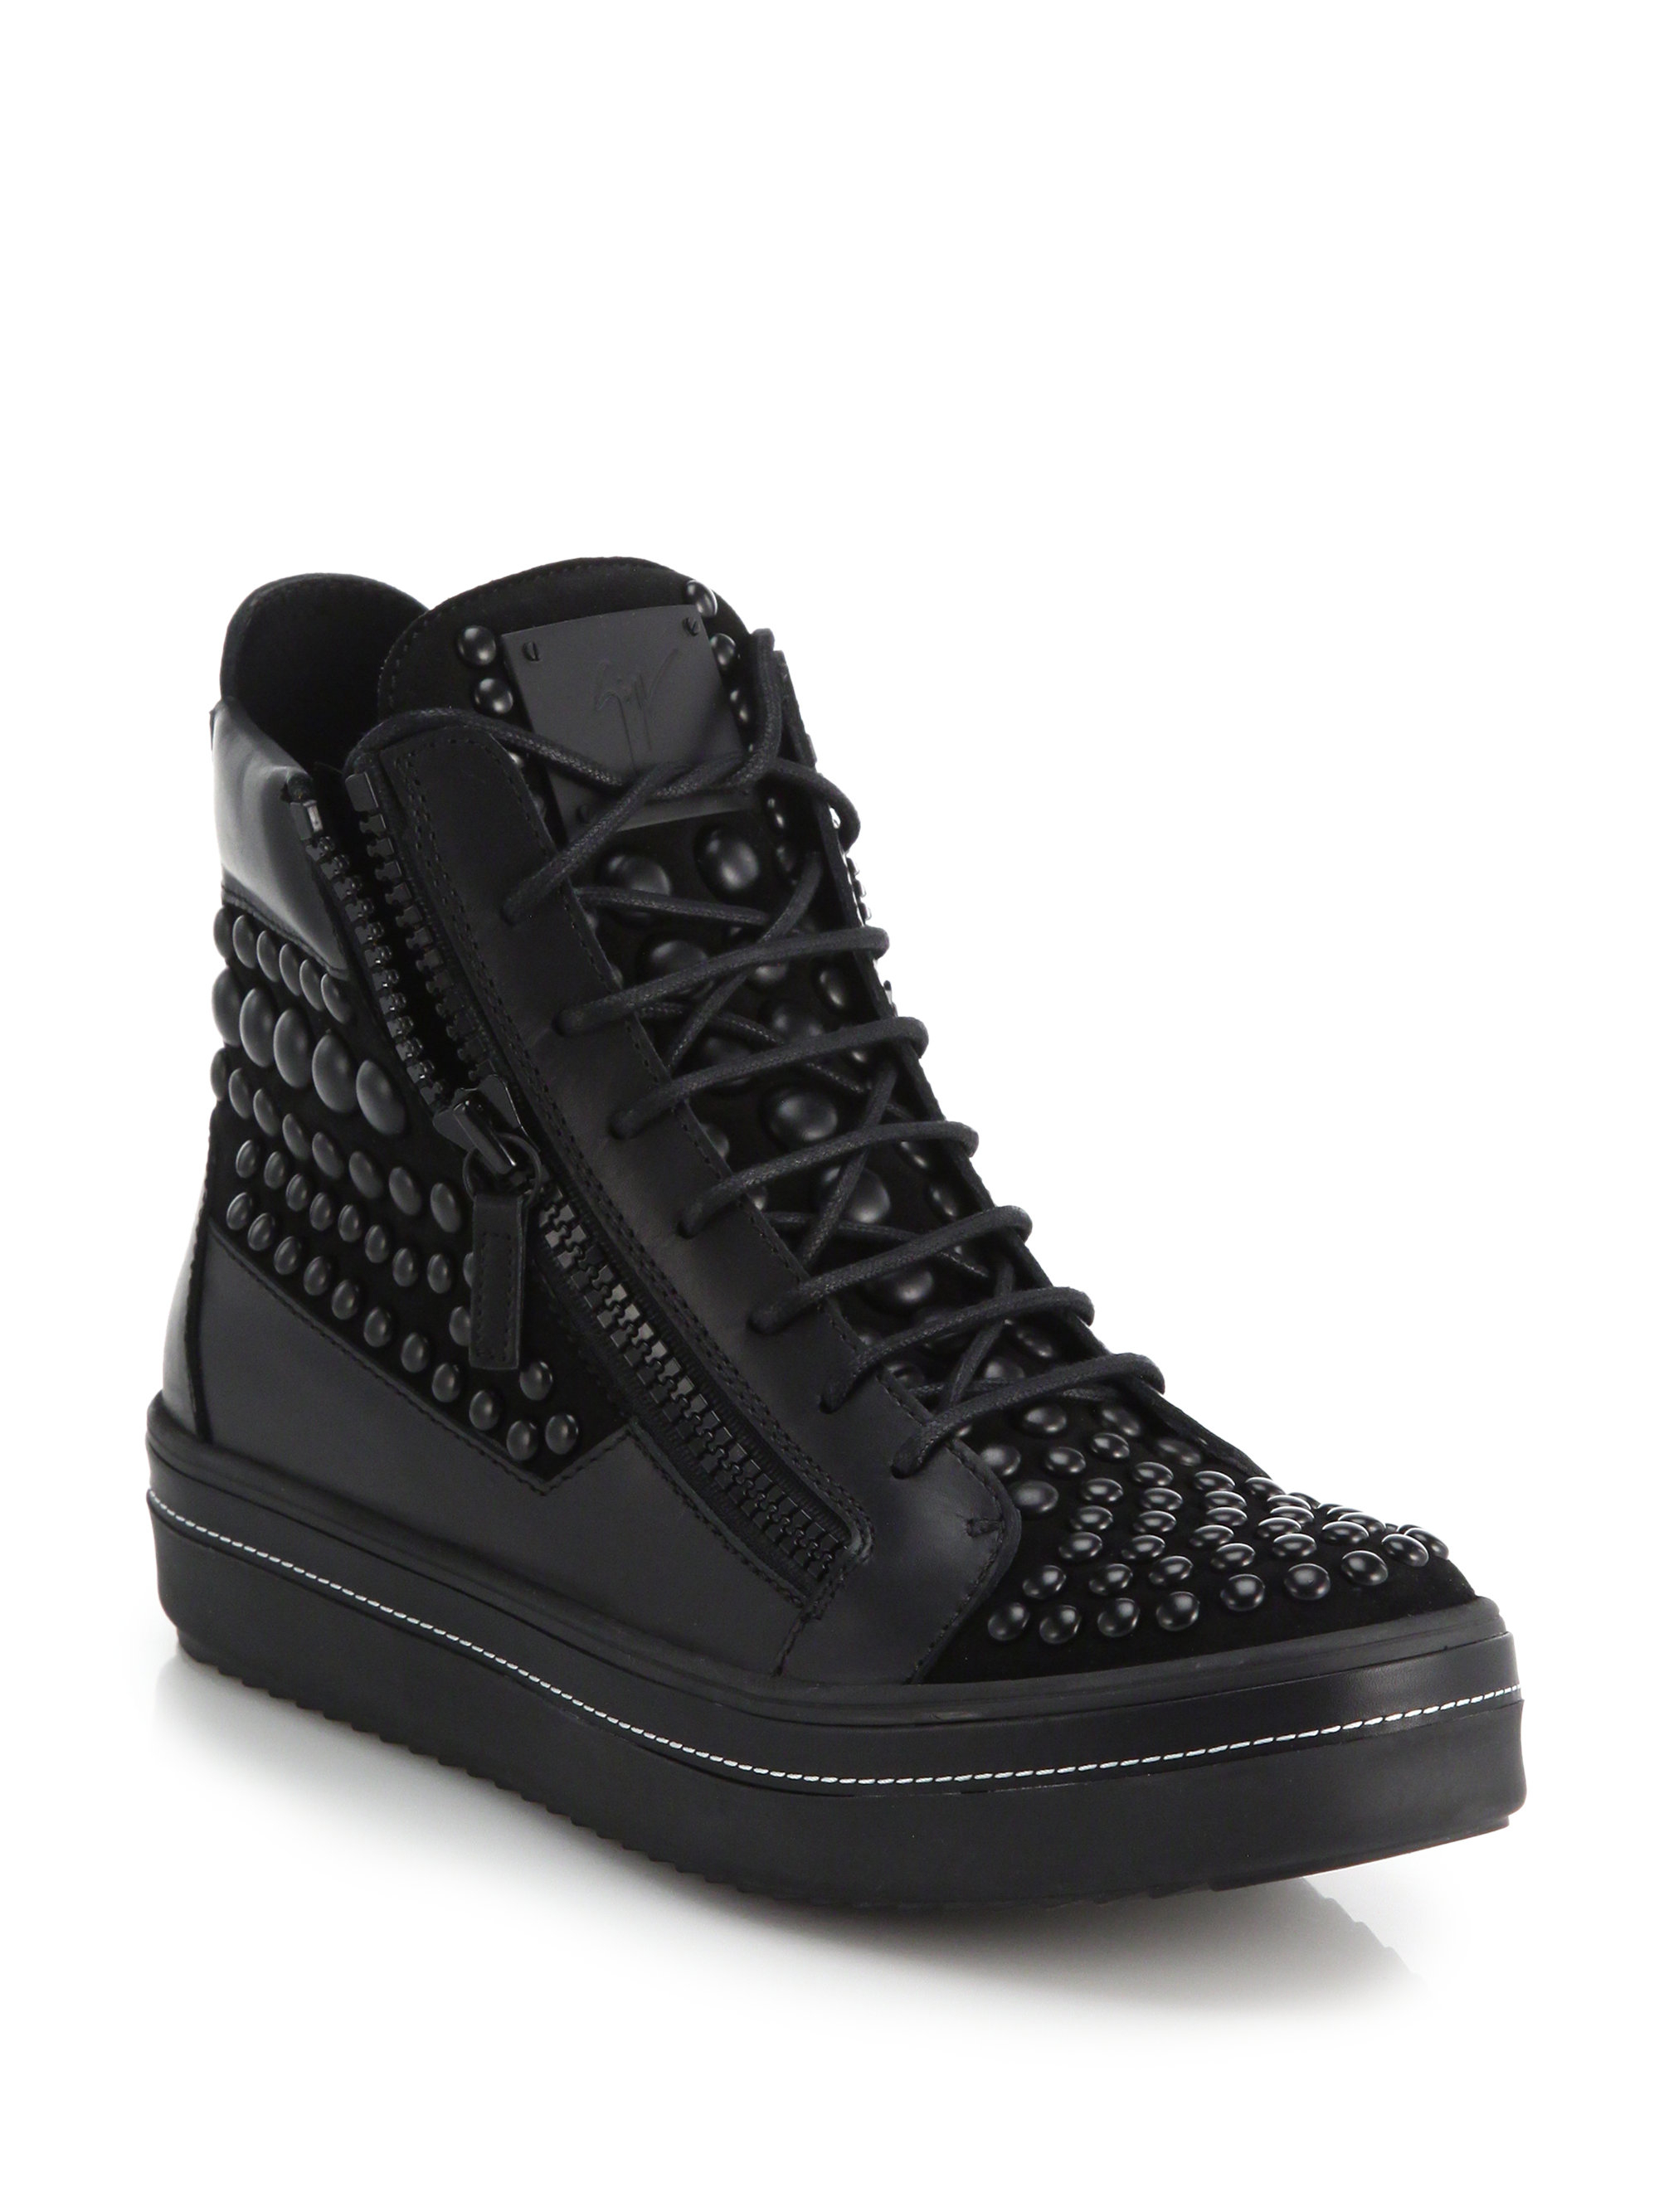 Black Studded May London High-Top Sneakers Giuseppe Zanotti AX8Sg39